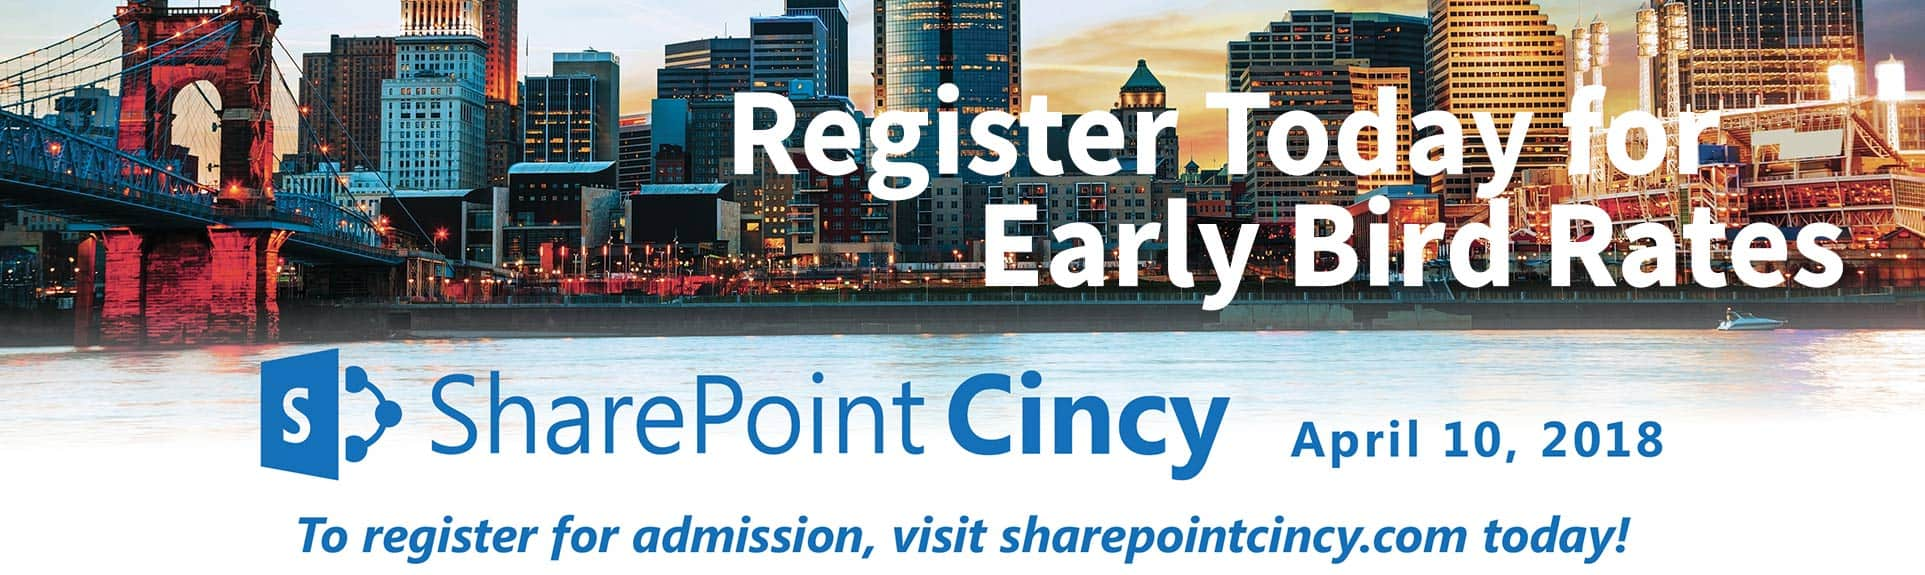 SharePoint Cincy Conference 2018 - MAX Technical Training